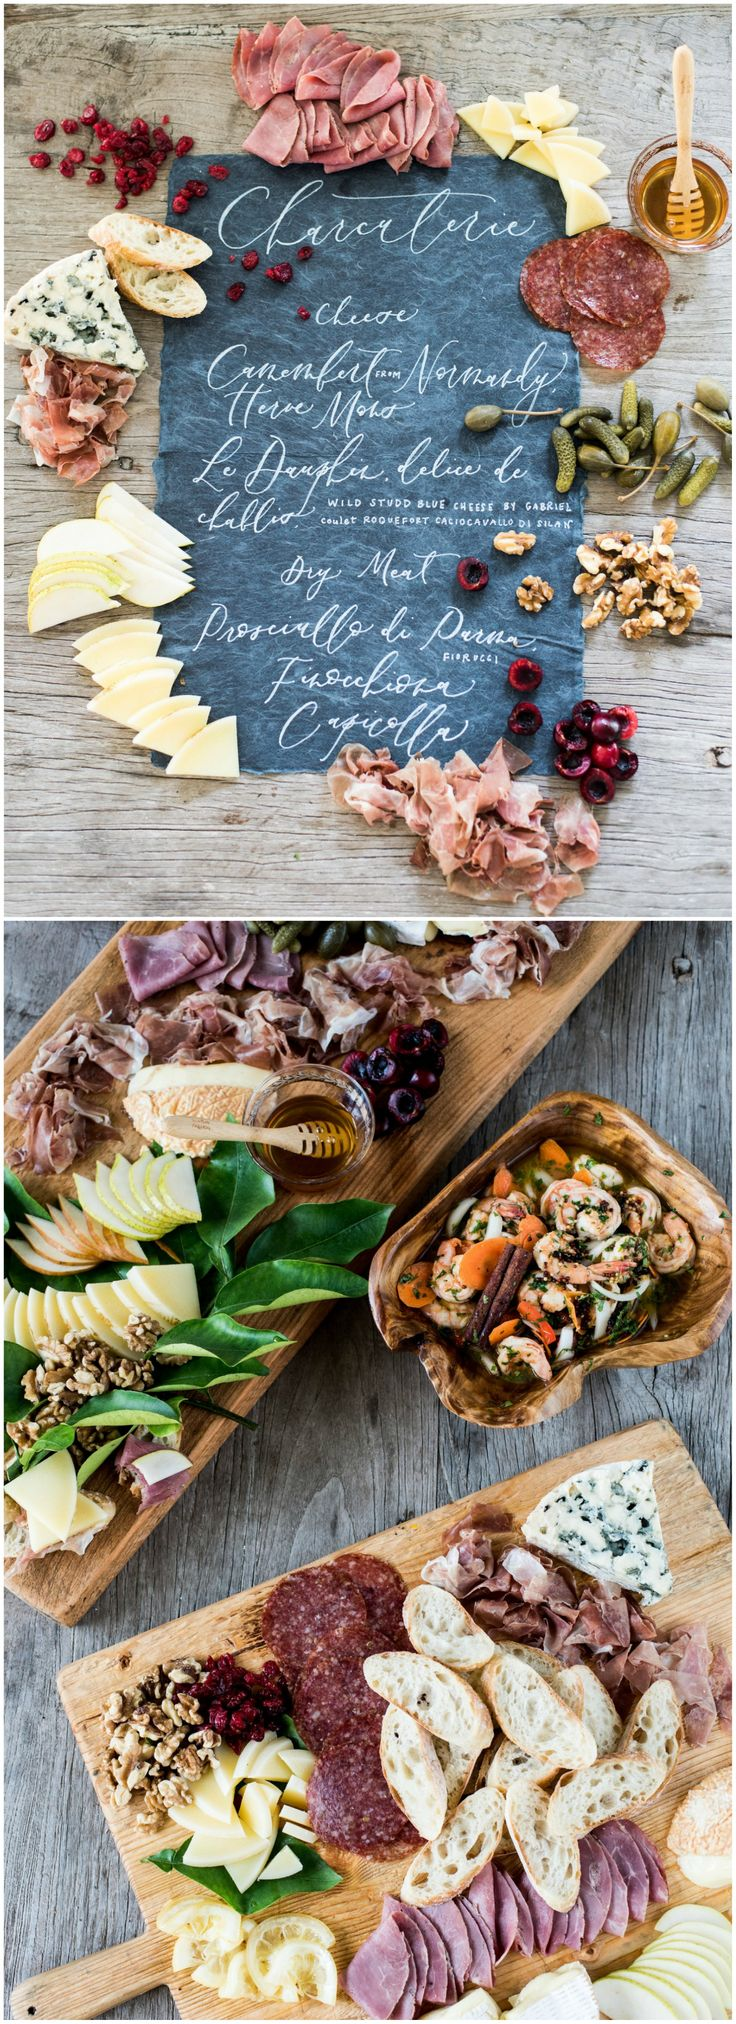 Meat and cheese board, wood planks, slices of bread, honey, charcuterie, nuts, dried cranberries, wedding food ideas, appetizer // Marni Rothschild Pictures